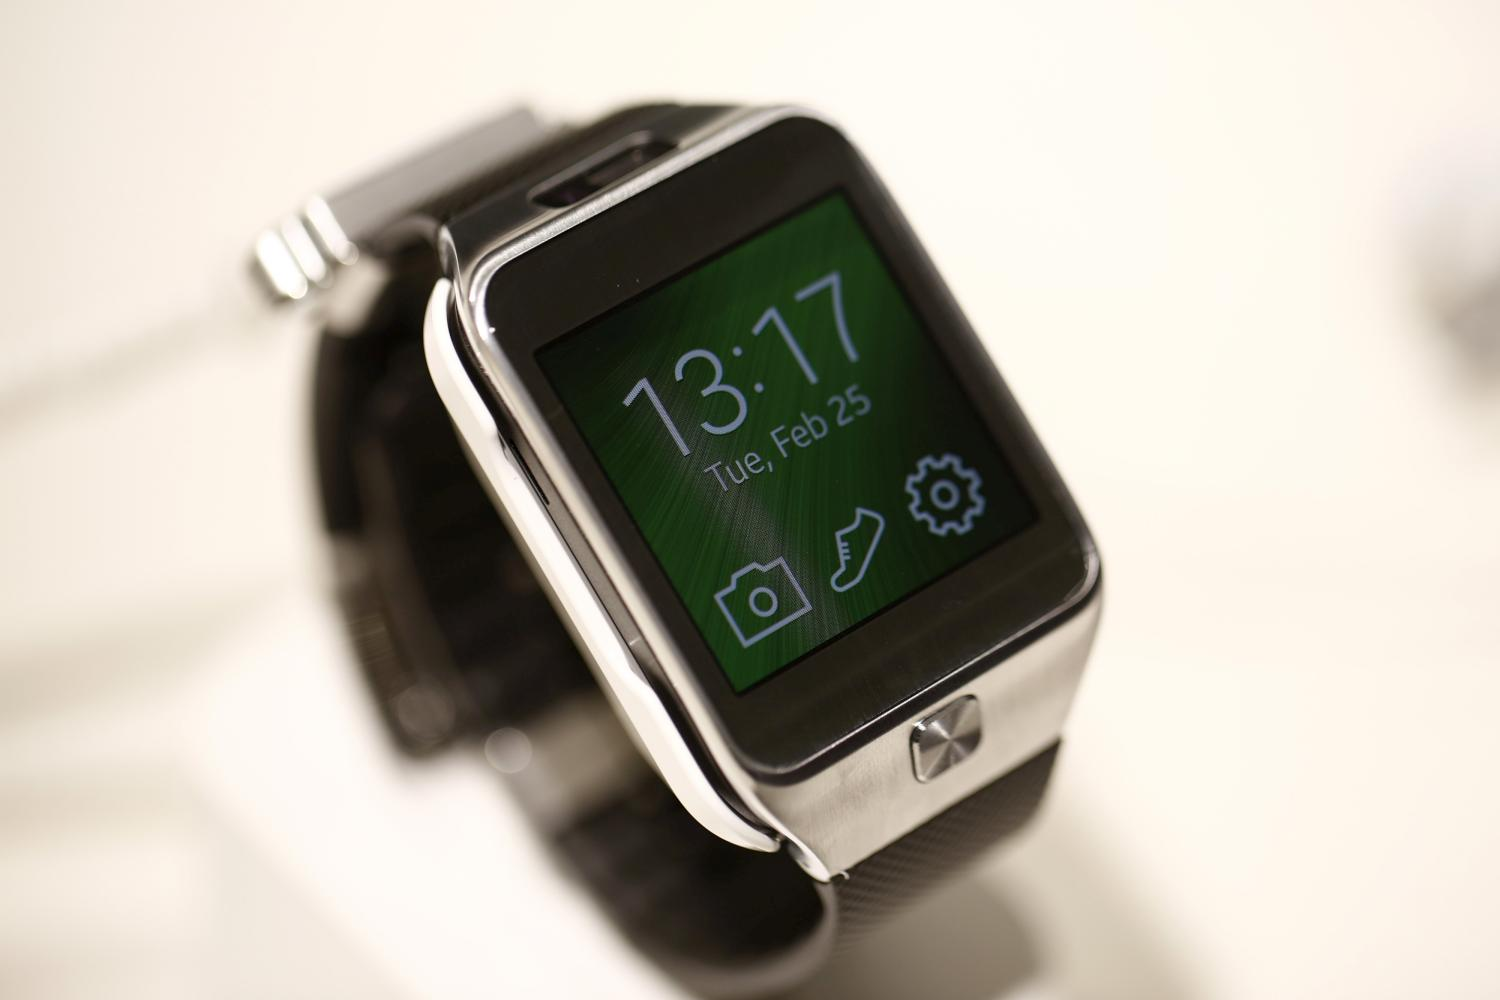 A Galaxy Gear 2 smartwatch sits on display at the Samsung Electronics Co. pavilion on day two of the Mobile World Congress in Barcelona, Spain, on Tuesday, Feb. 25, 2014.